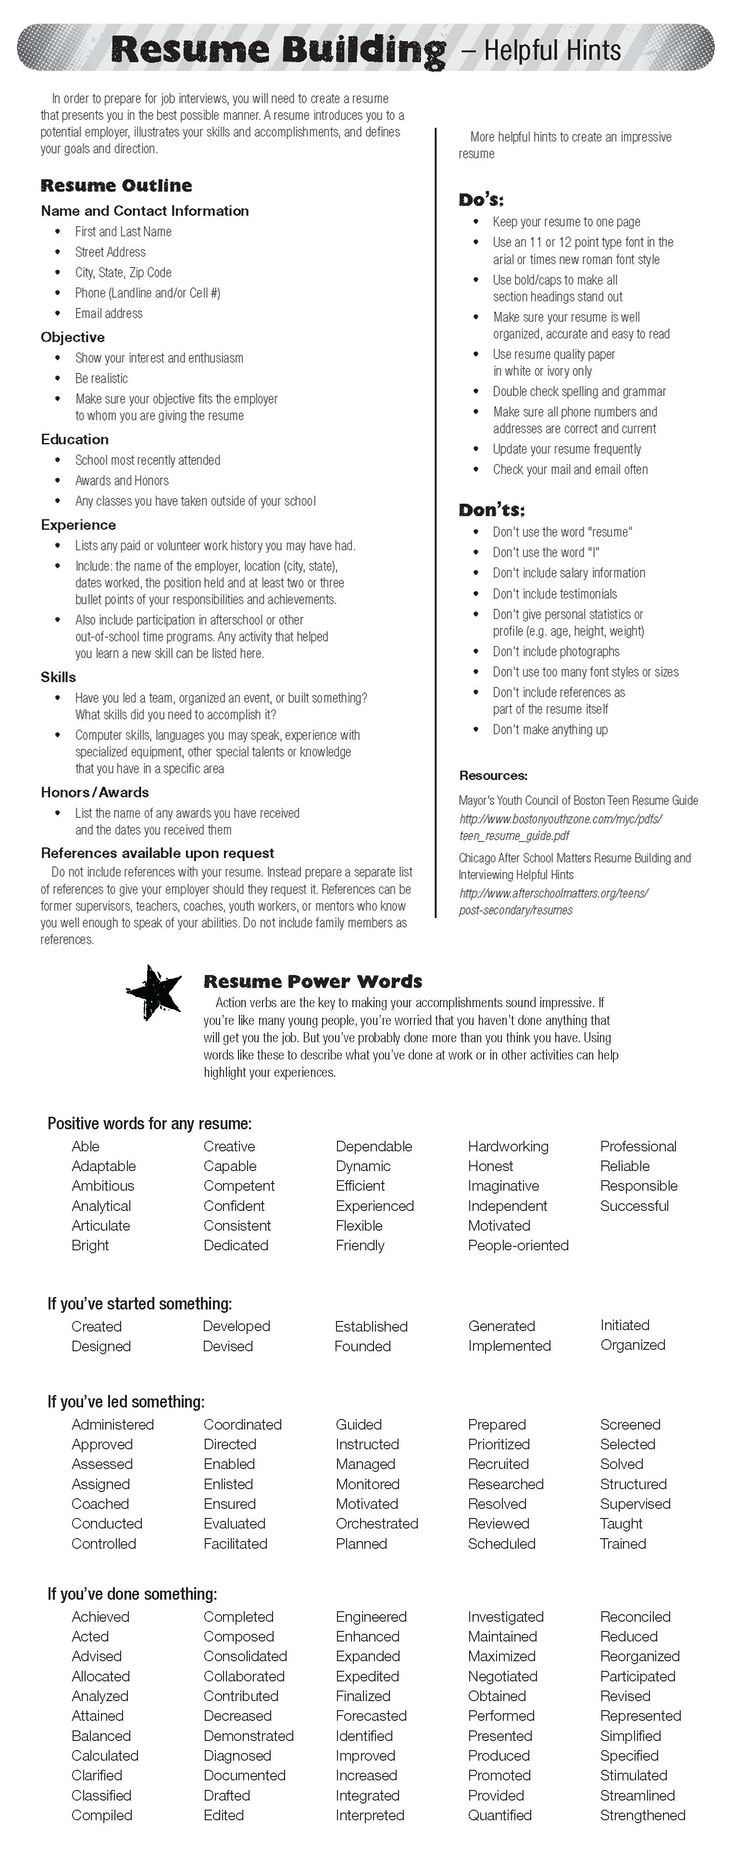 Opposenewapstandardsus  Terrific  Ideas About Resume On Pinterest  Cv Format Resume Cv And  With Likable  Ideas About Resume On Pinterest  Cv Format Resume Cv And Resume Templates With Agreeable Resume For Receptionist Also Job Skills For Resume In Addition Clerical Resume And Personal Banker Resume As Well As Free Resume Template Microsoft Word Additionally Resume Builder Linkedin From Pinterestcom With Opposenewapstandardsus  Likable  Ideas About Resume On Pinterest  Cv Format Resume Cv And  With Agreeable  Ideas About Resume On Pinterest  Cv Format Resume Cv And Resume Templates And Terrific Resume For Receptionist Also Job Skills For Resume In Addition Clerical Resume From Pinterestcom